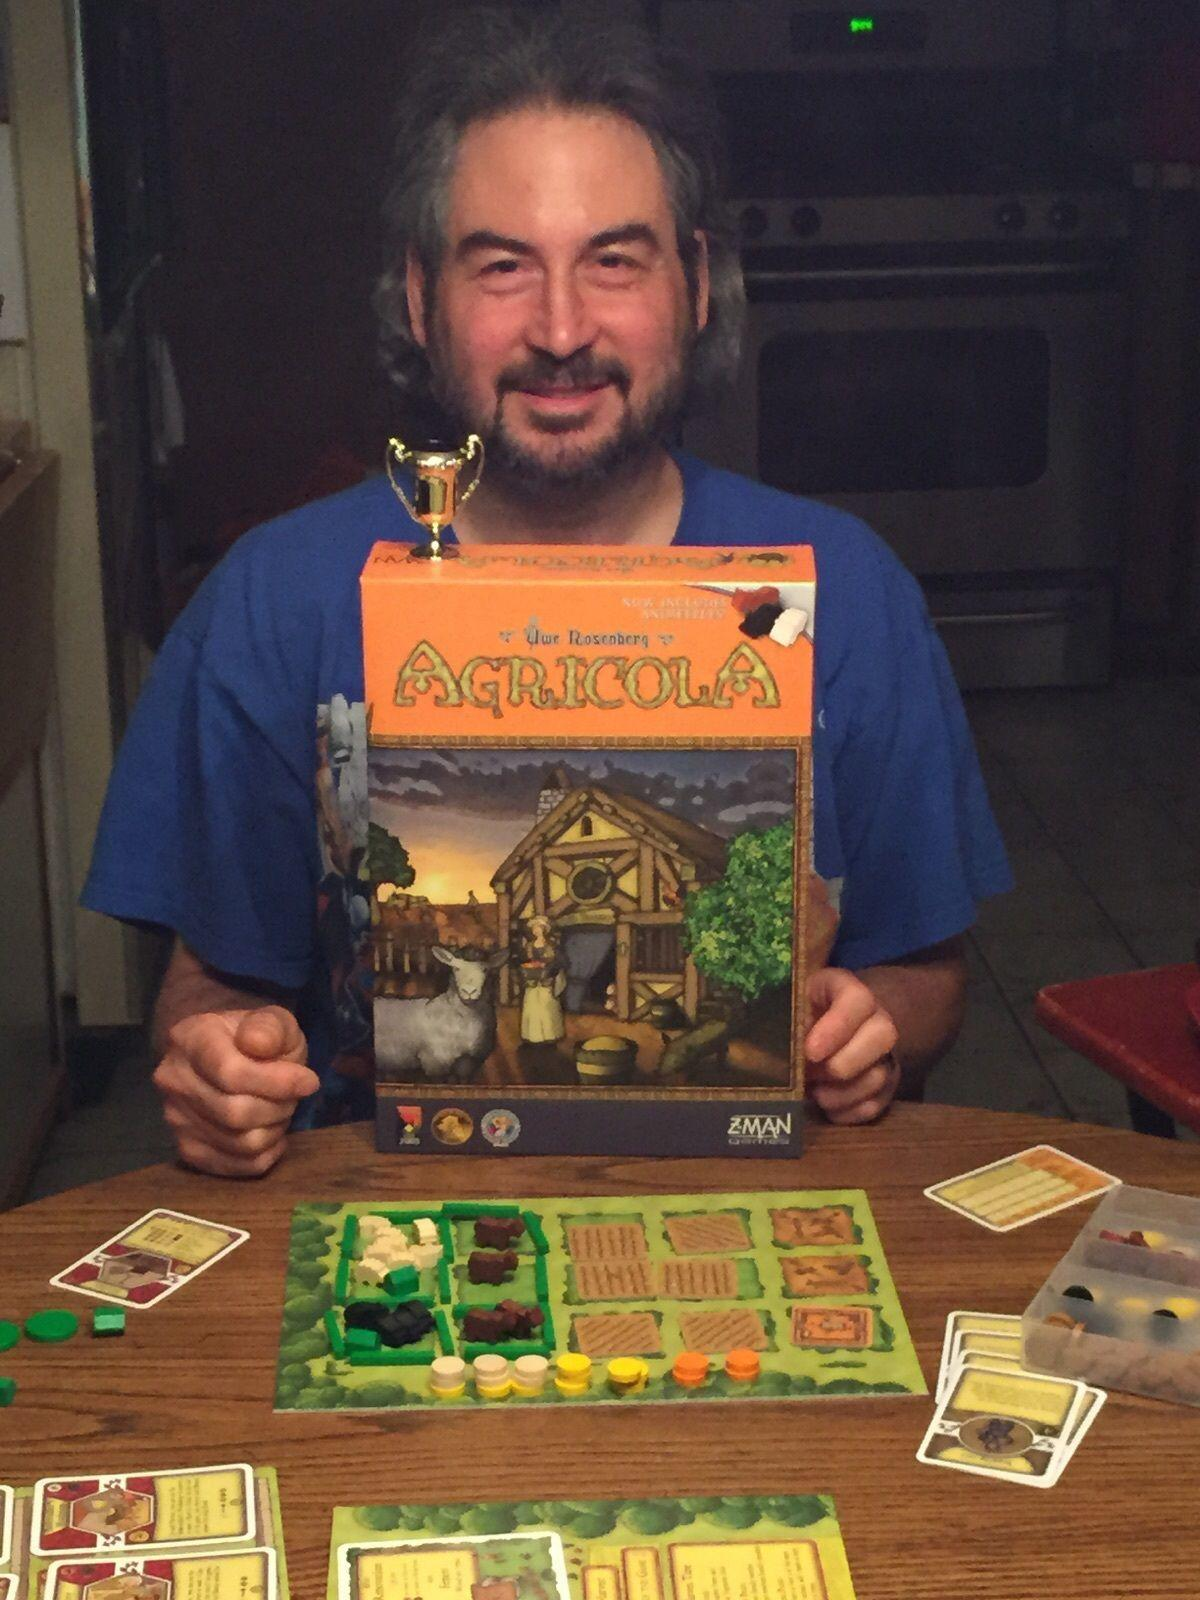 Michigan oakland county wixom - Kevin T Oakland County Gamers Board Game Community Wixom Mi Meetup